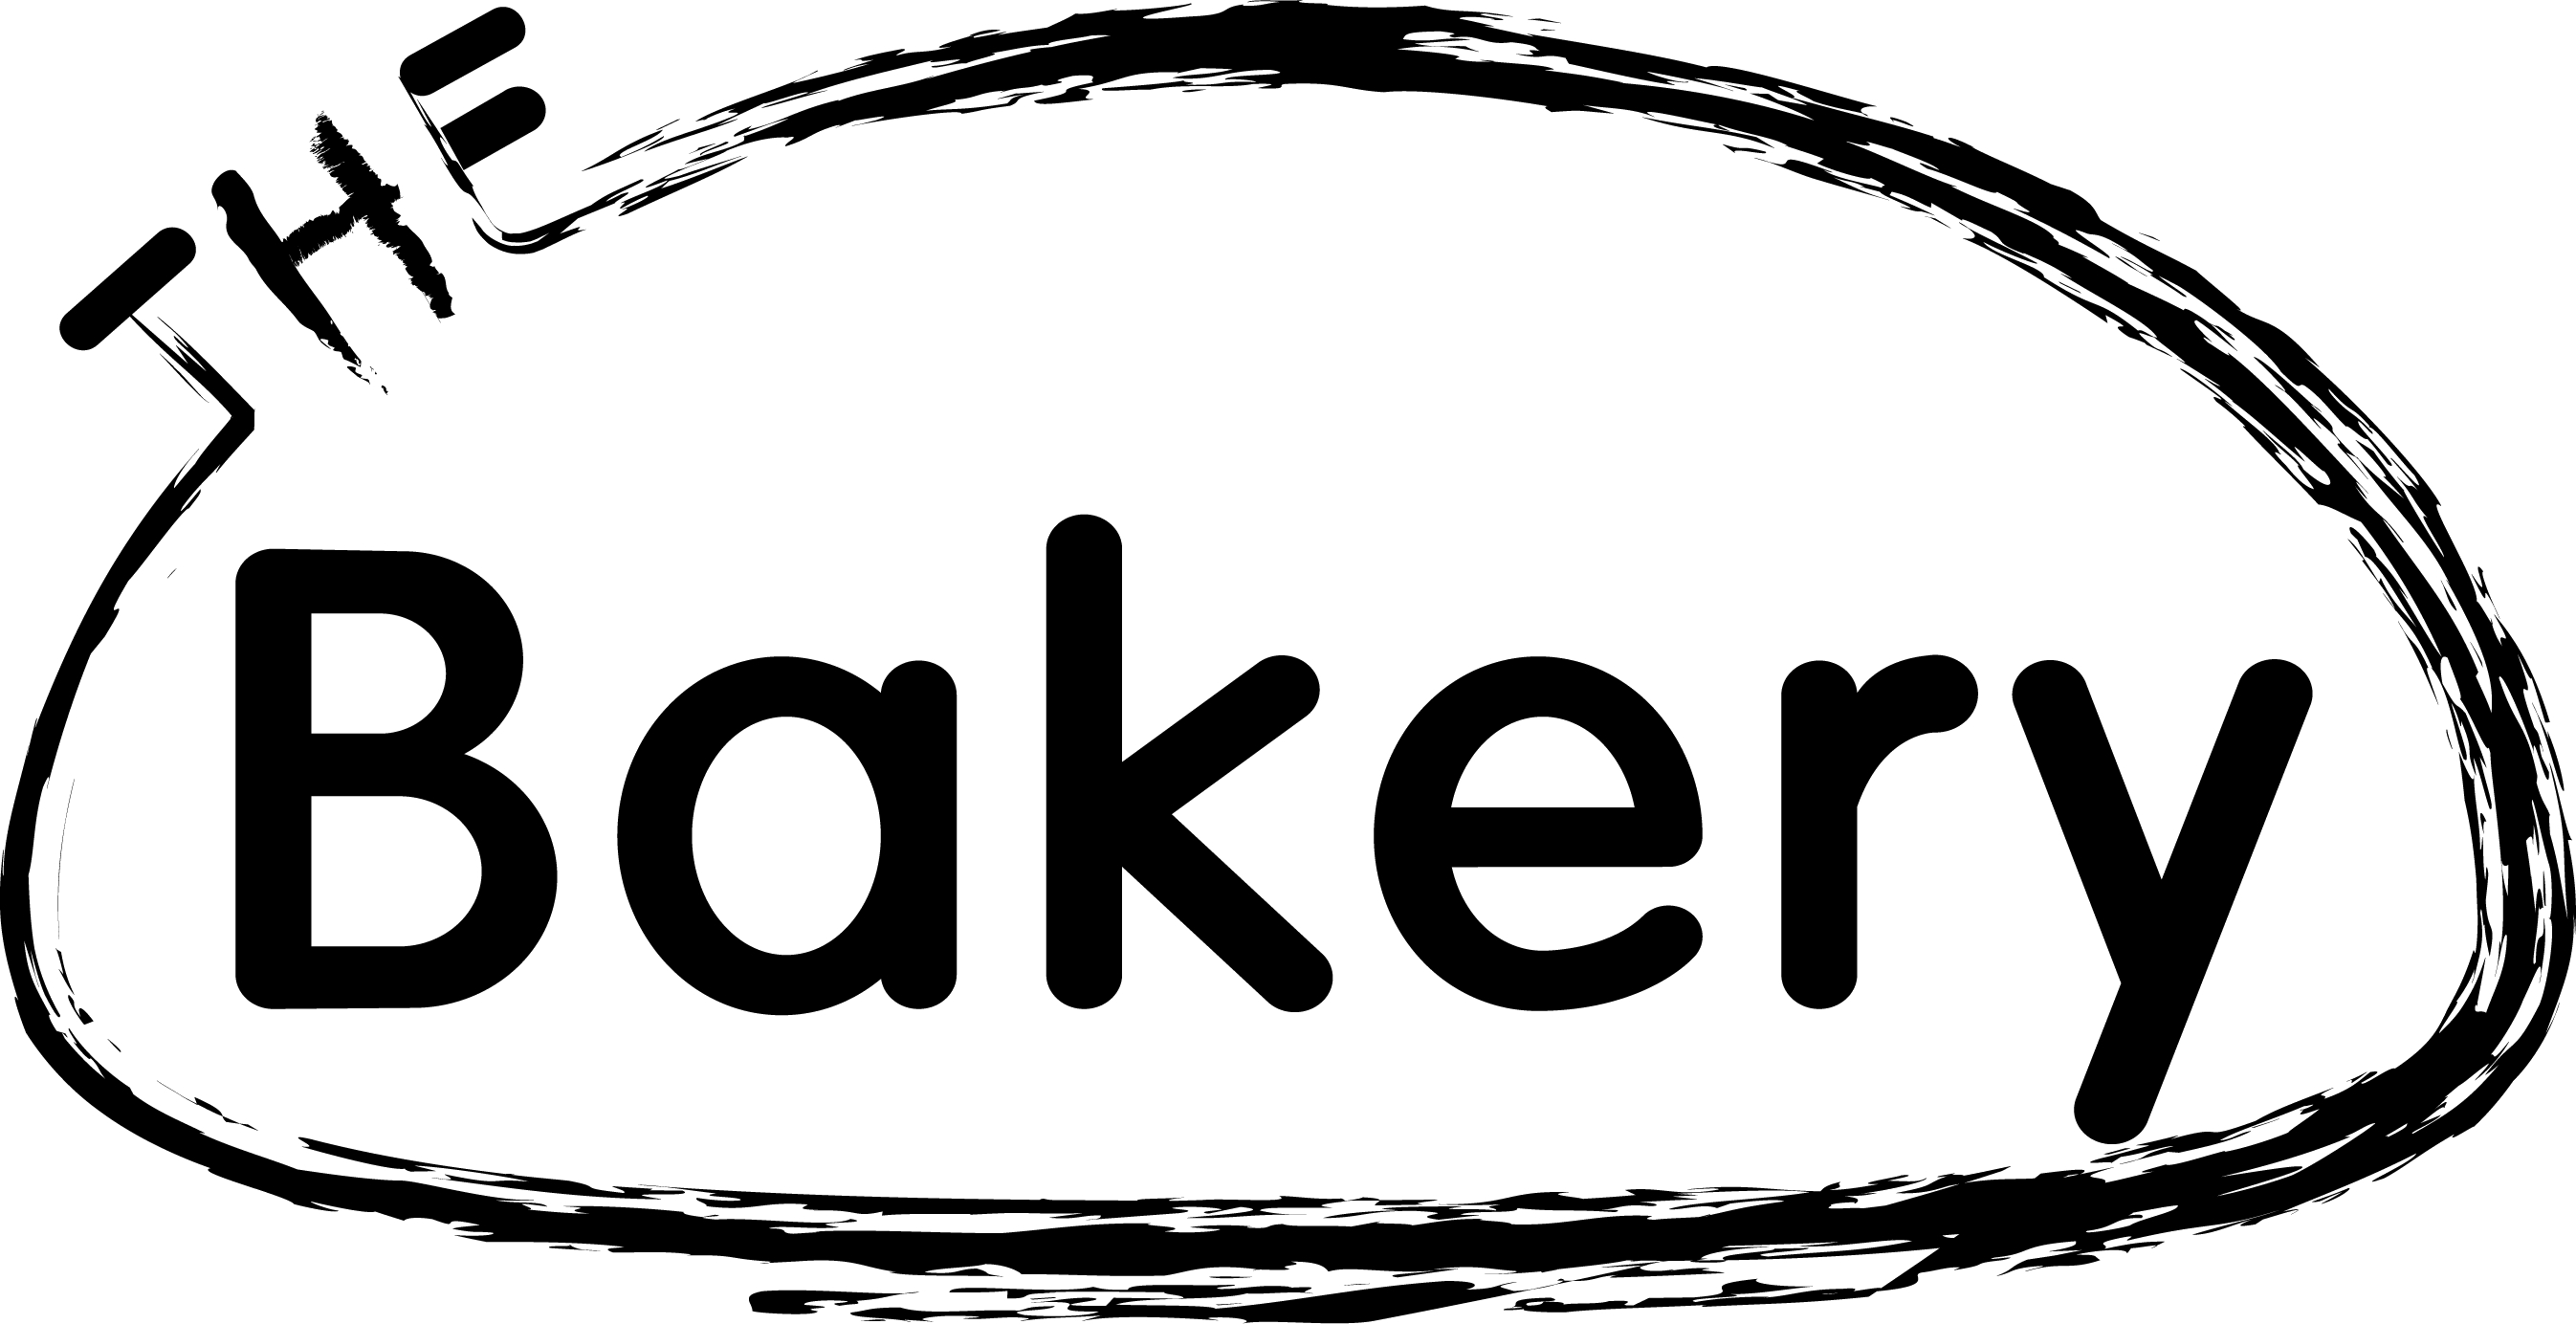 Bakery sign clipart clip art freeuse stock Free Bakery Cliparts, Download Free Clip Art, Free Clip Art on ... clip art freeuse stock